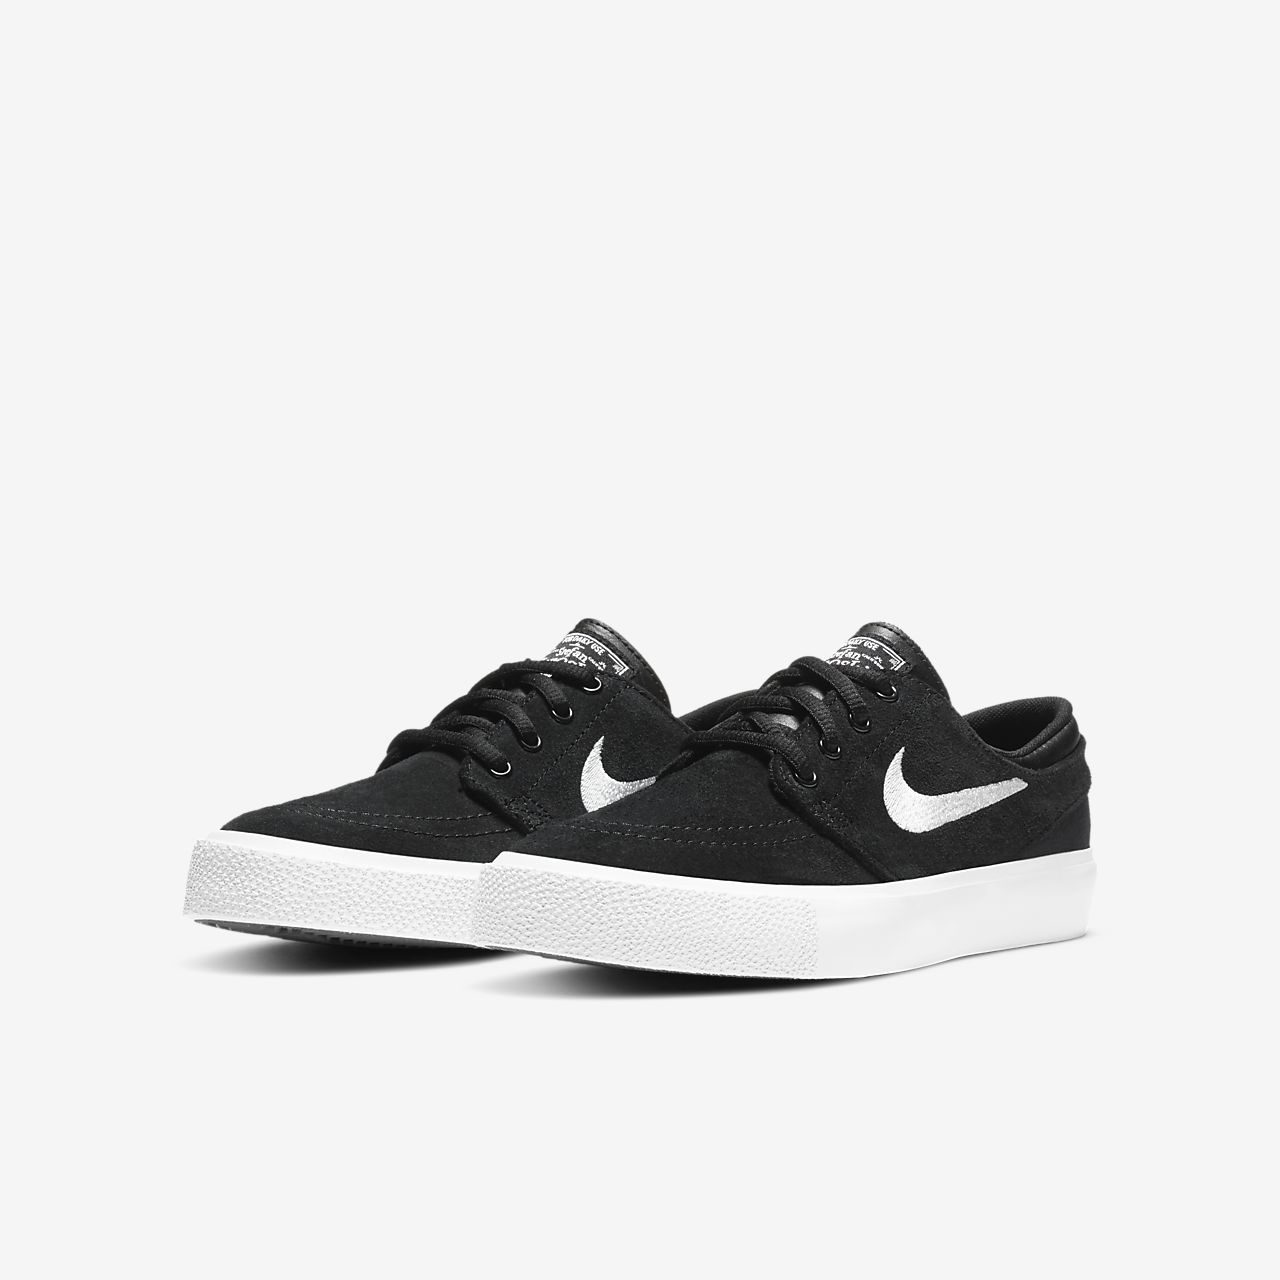 new product d4320 6c652 ... Nike Zoom Stefan Janoski Big Kids  Skateboarding Shoe